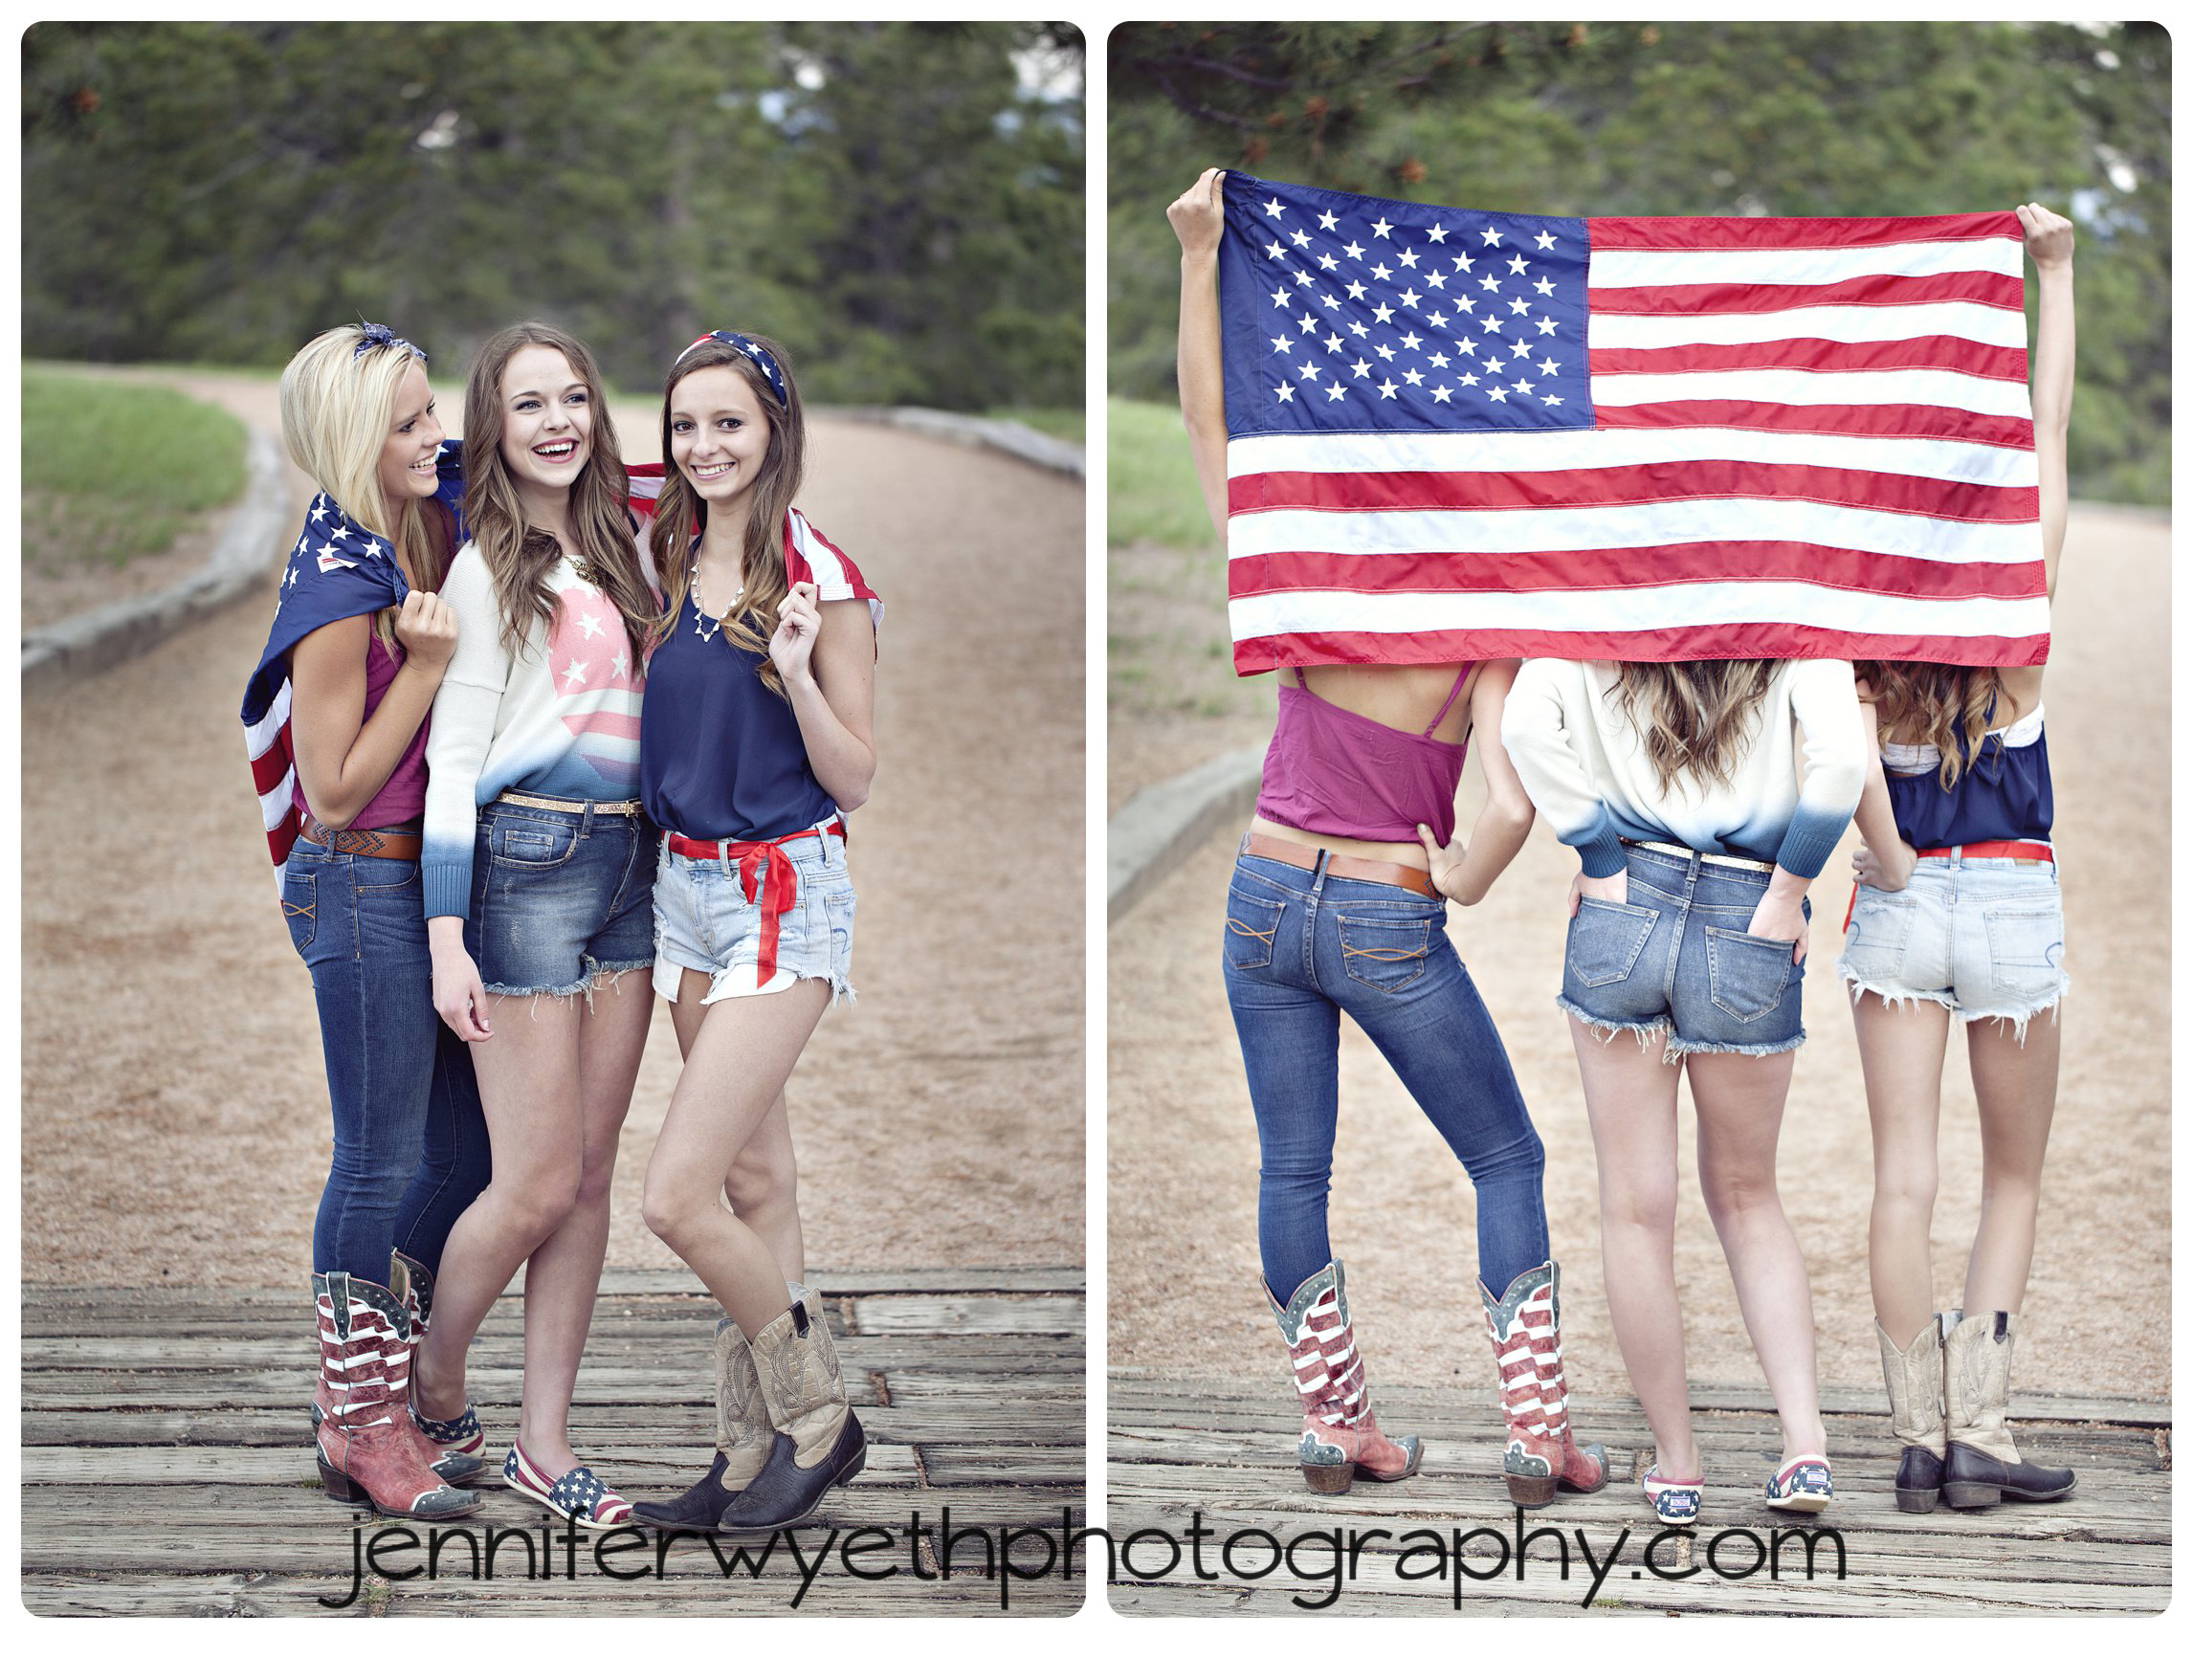 three sheer captains pose with American flag while laughing on small bridge in forest